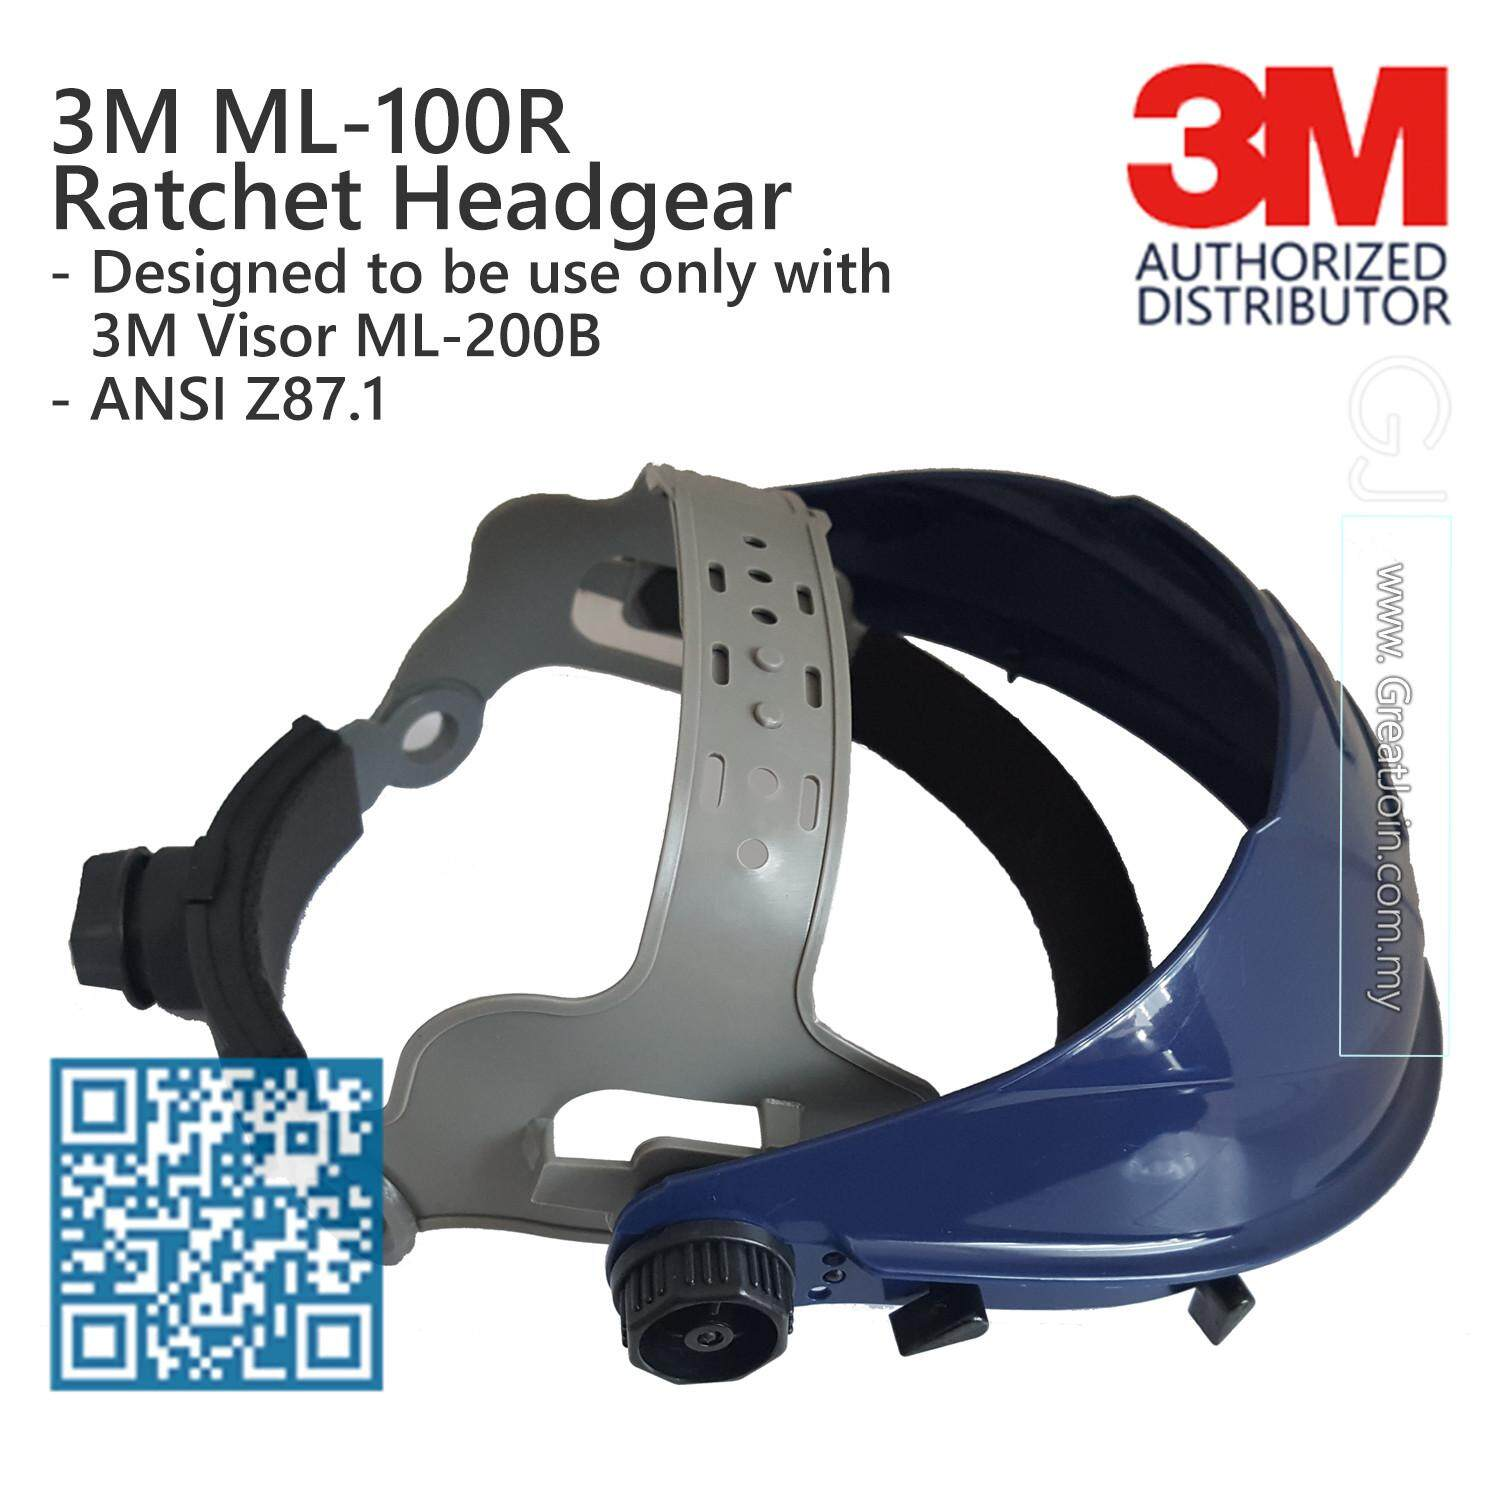 3M ML-100R Ratchet Headgear / Used ONLY with 3M Visor ML-200B [Headgear only, Not Including Visor] [1 piece]